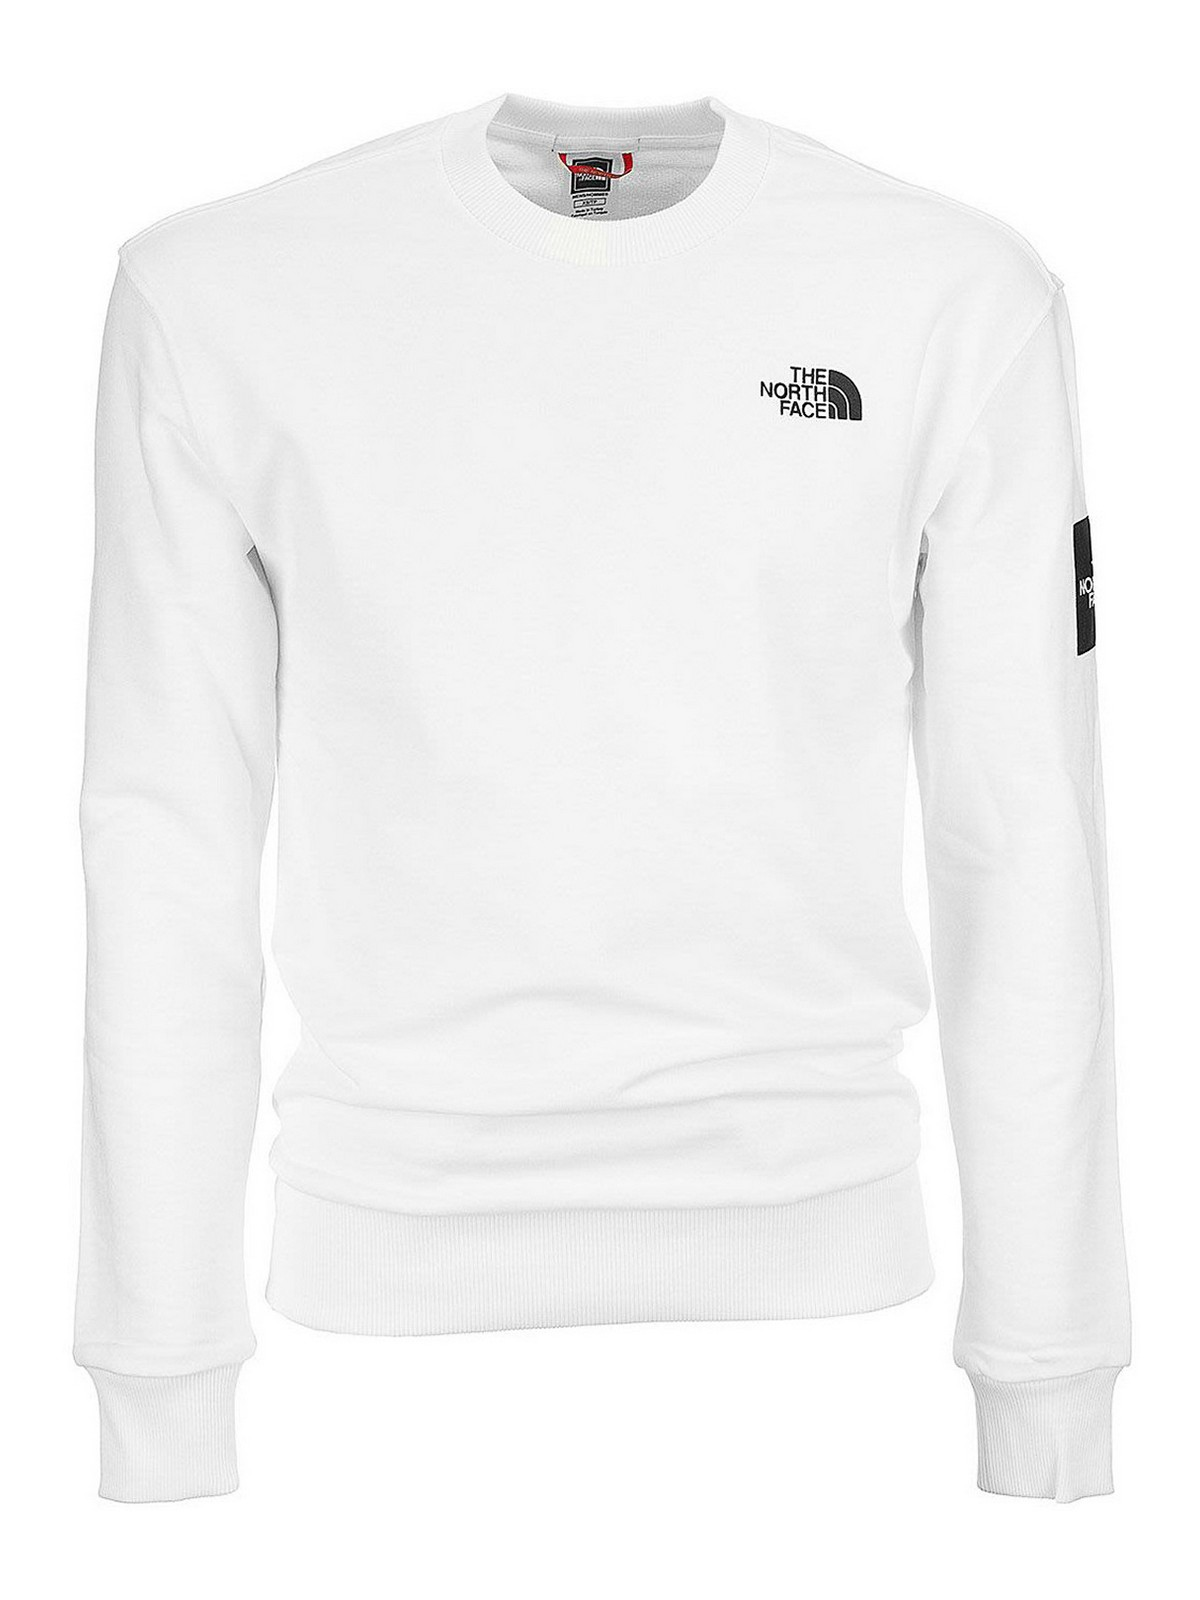 The North Face LOGO SWEATSHIRT